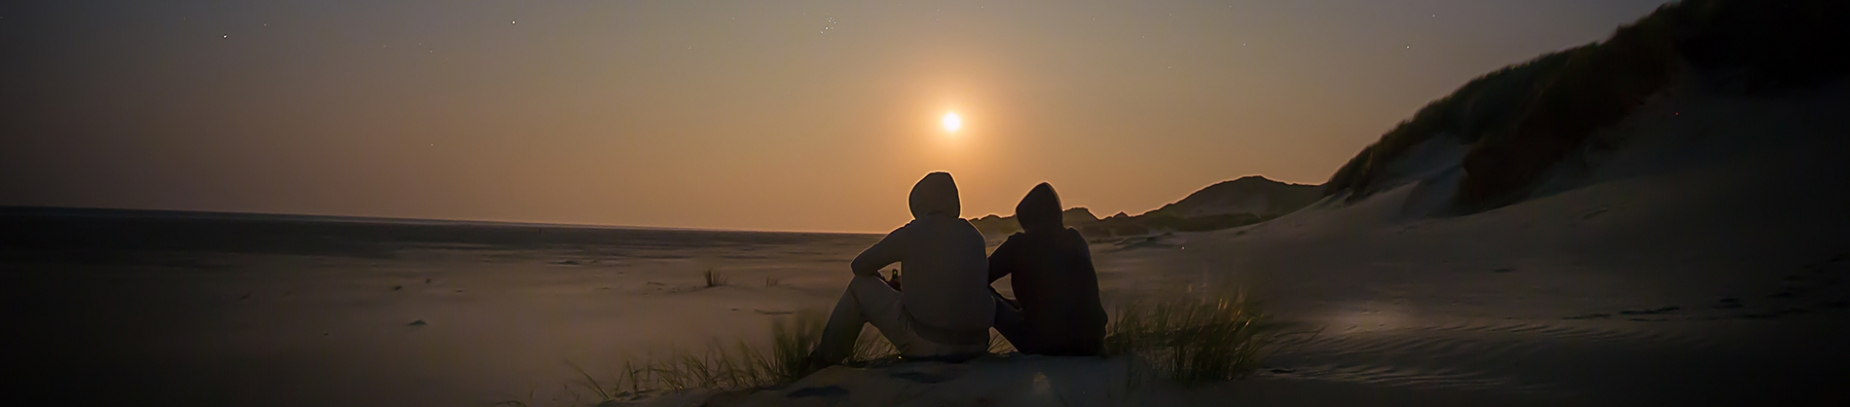 Two people sat on a beach watching the sunset